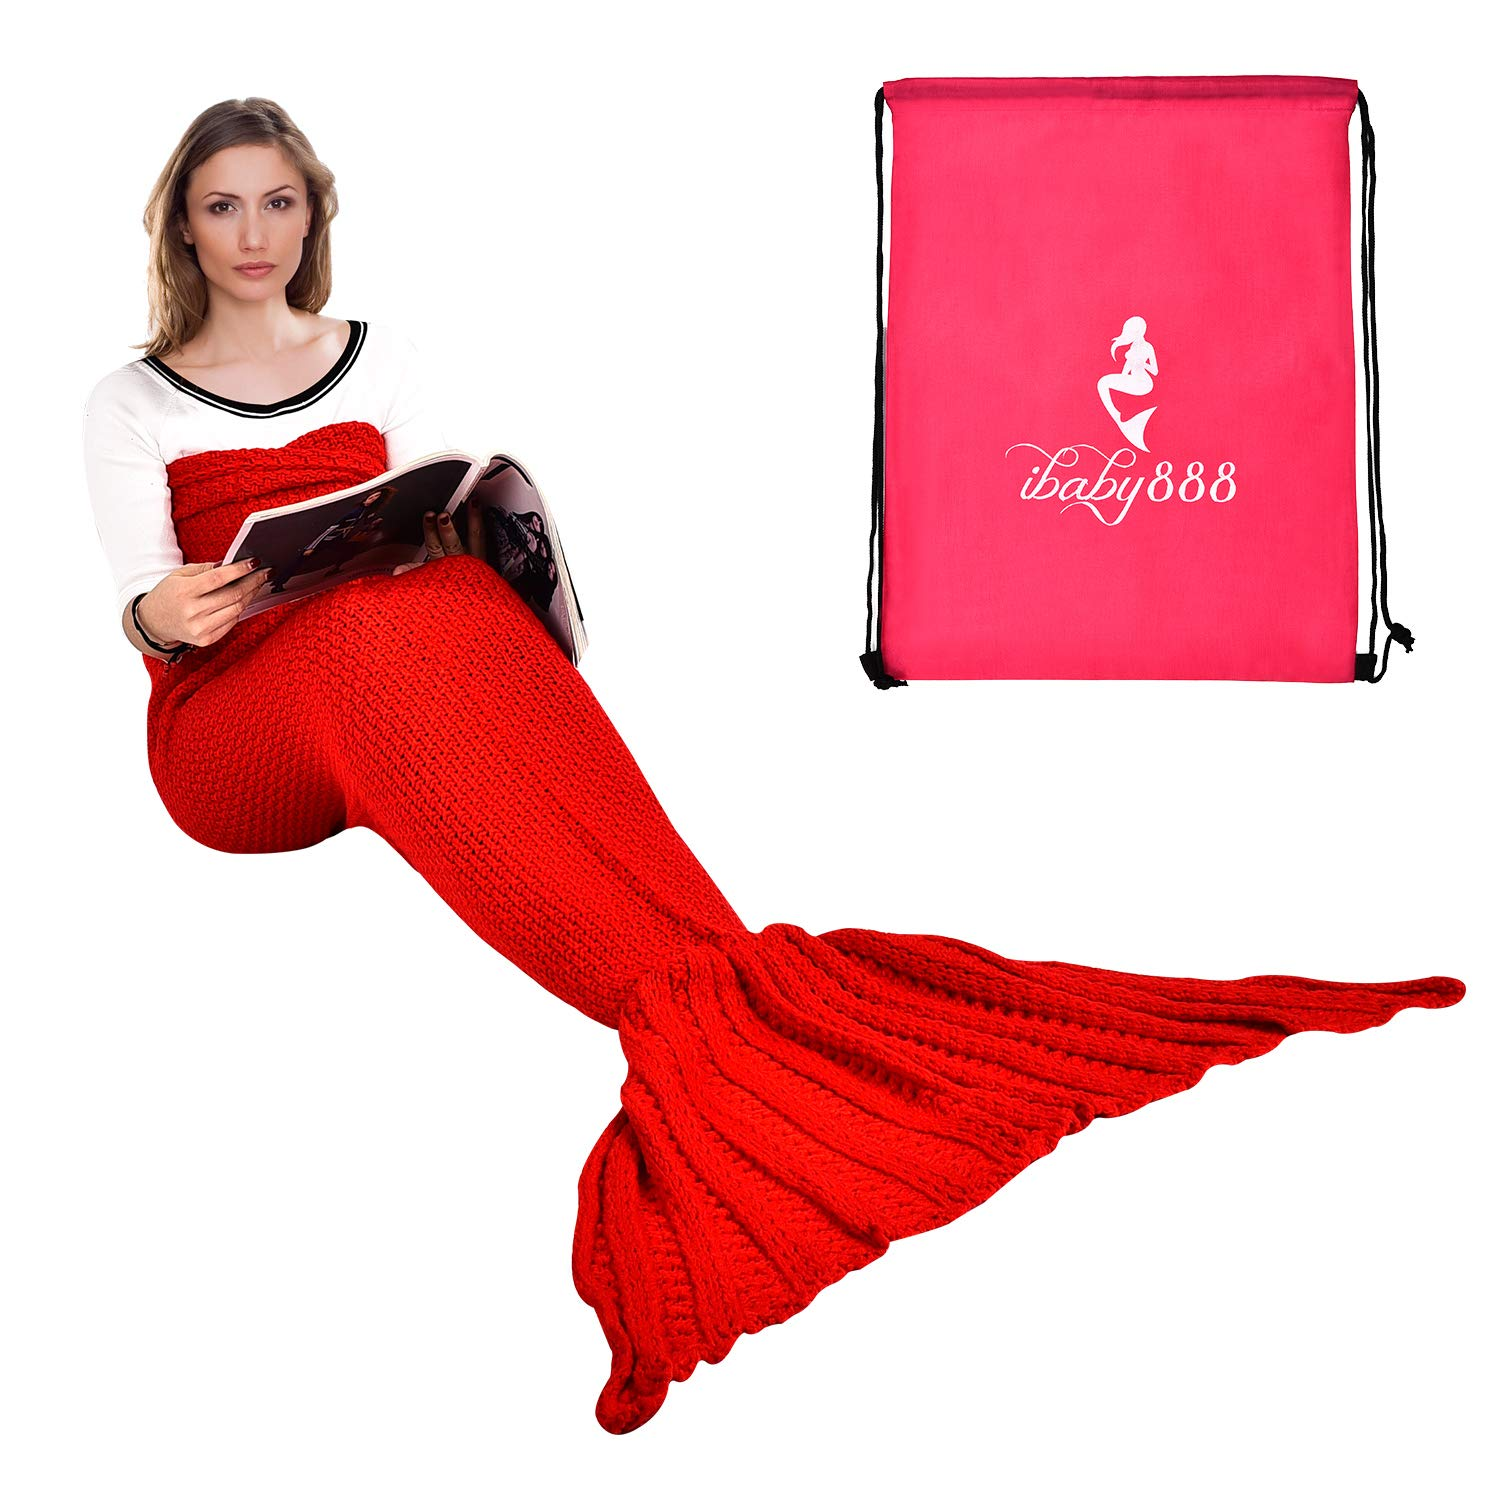 Handmade Mermaid Tail Blanket Crochet , Ibaby888 All Seasons Warm Knitted Bed Blanket Sofa Quilt Living Room Sleeping Bag for Kids and Adults(72.8